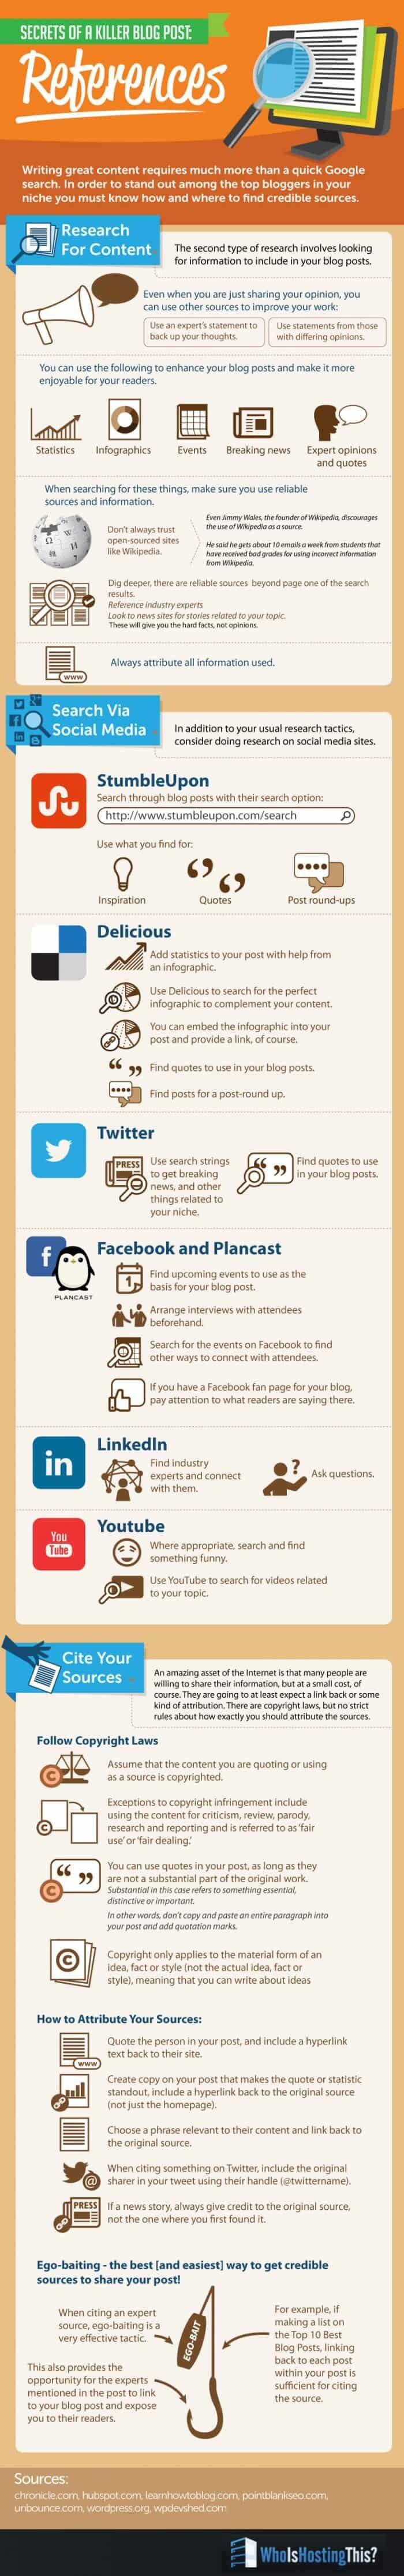 Infographic on blogging